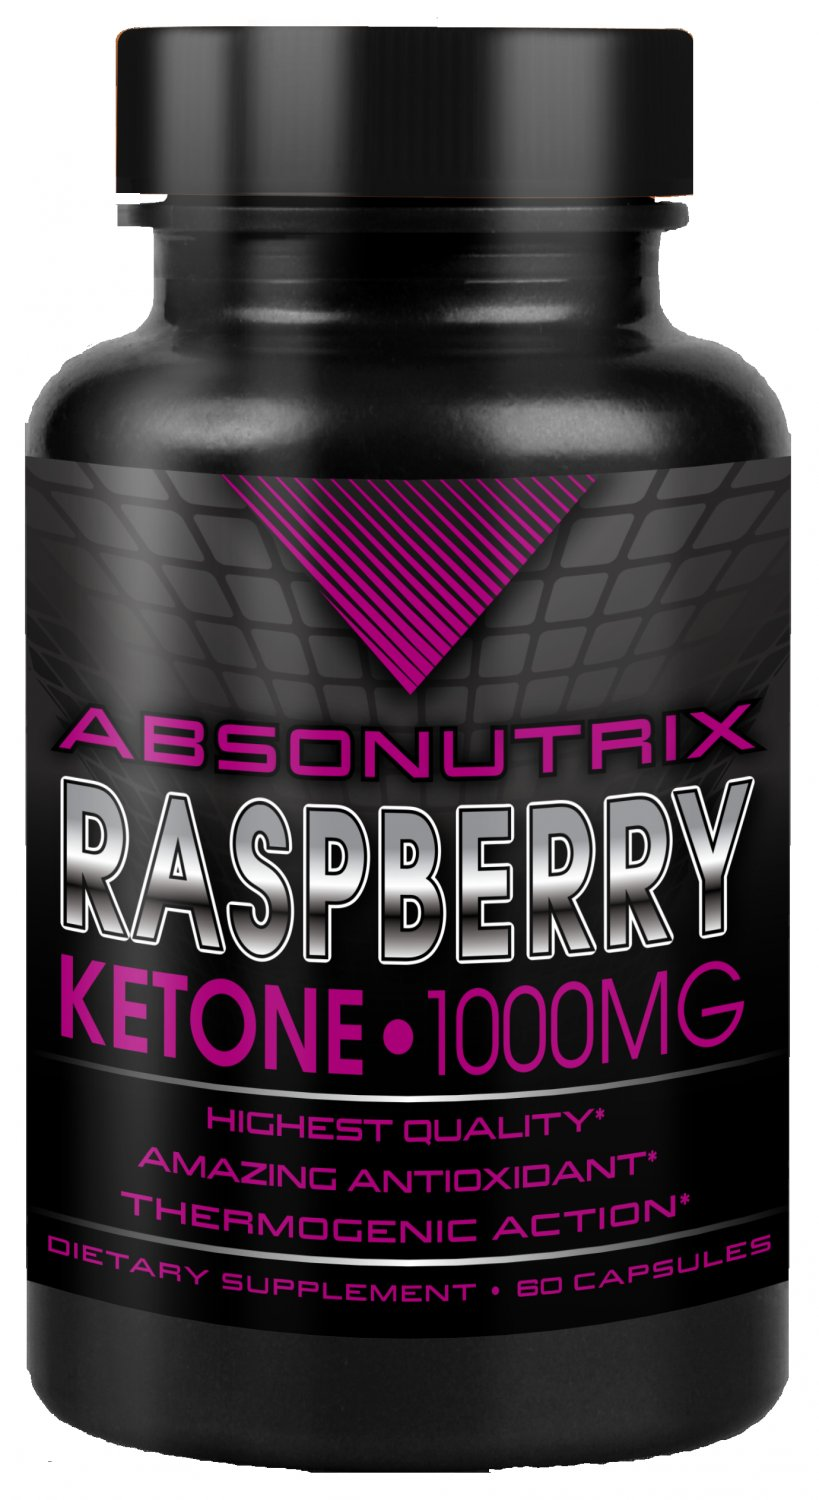 absonutrix raspberry ketone 1000mg capsules. Black Bedroom Furniture Sets. Home Design Ideas